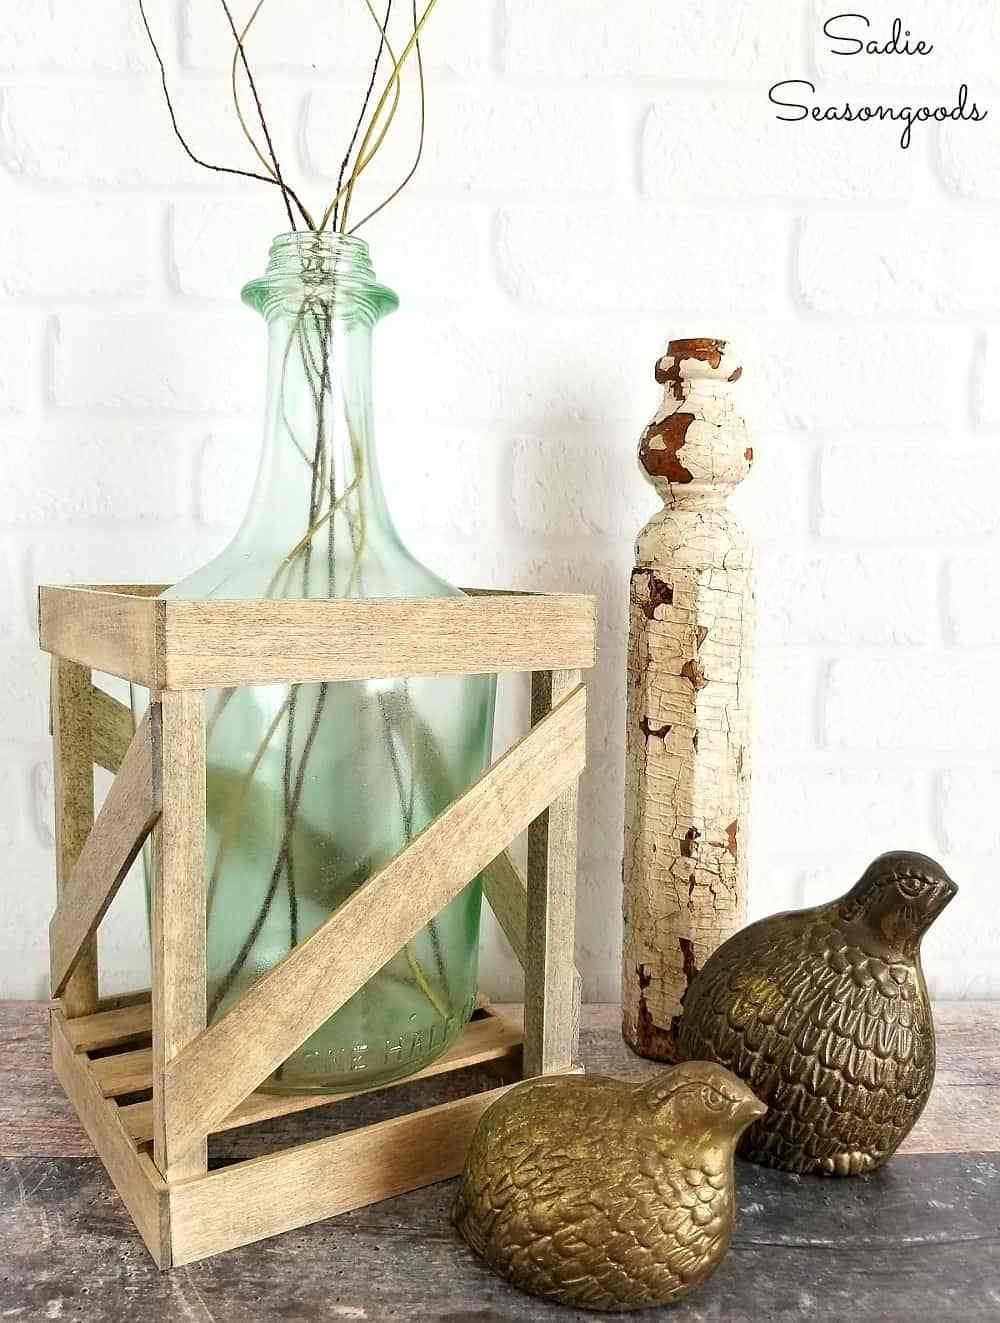 This thrift store jug with wood accents is farmhouse chic.